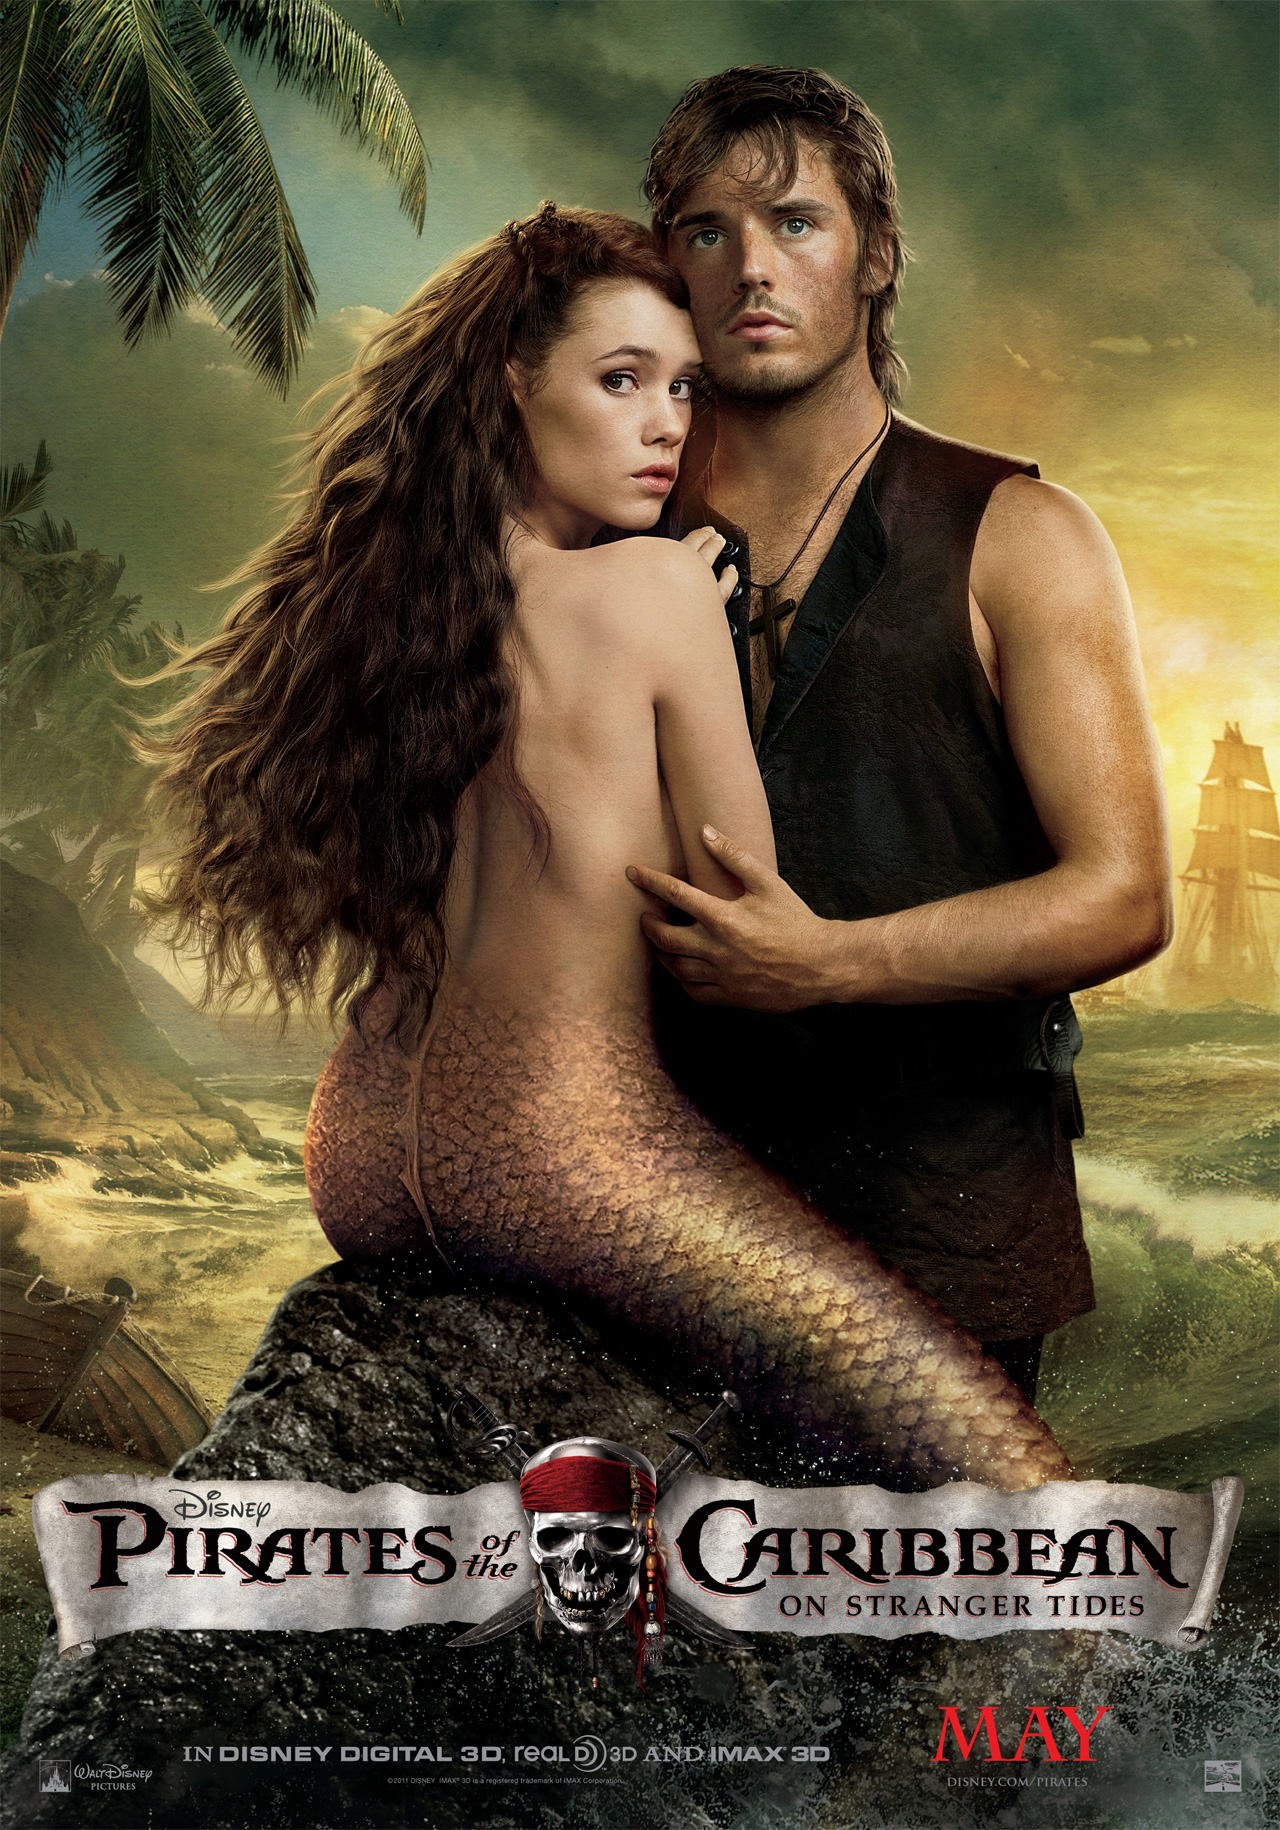 New Pirates of the Caribbean: On Stranger Tides International Mermaid Posters - TheHDRoom